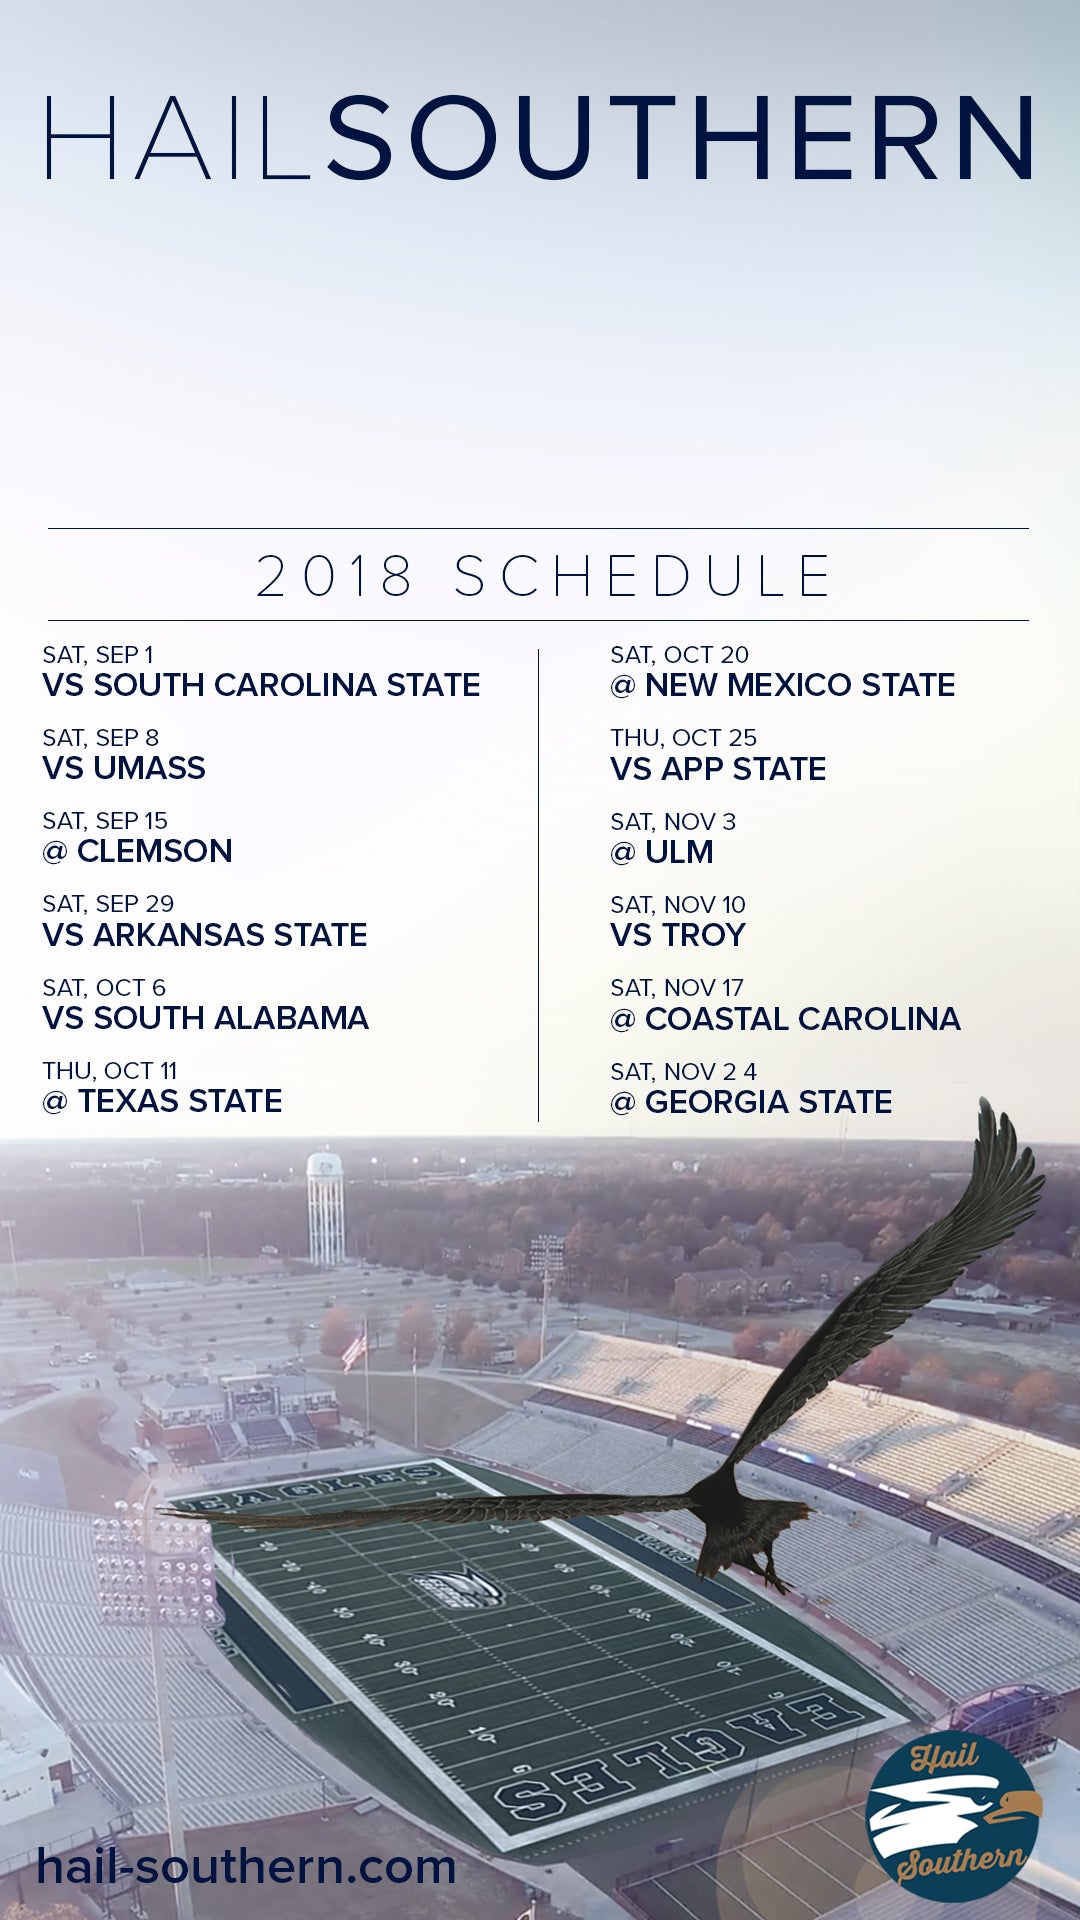 2018_Georgia_Southern_Schedule_Mobile_Wallpaper